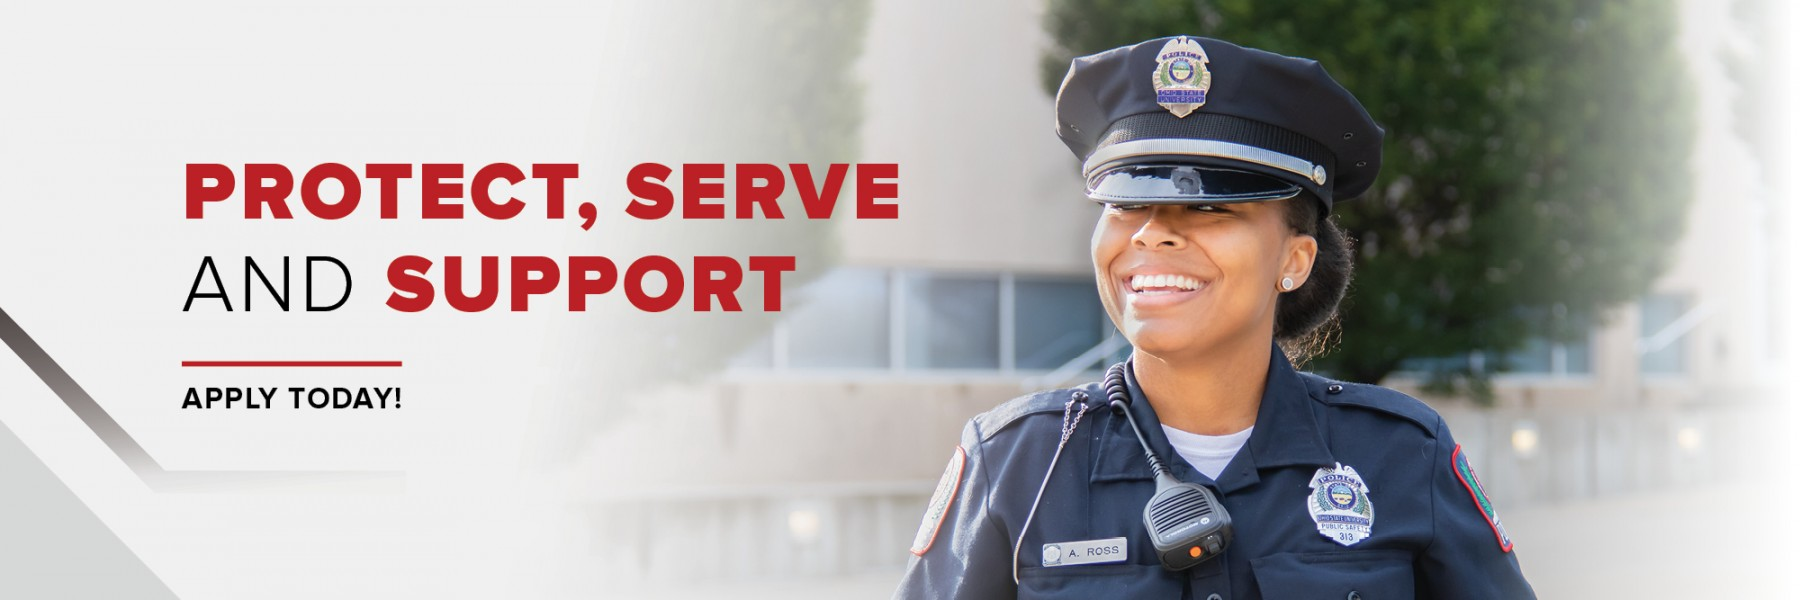 Help us protect, serve and support our community at Ohio State.